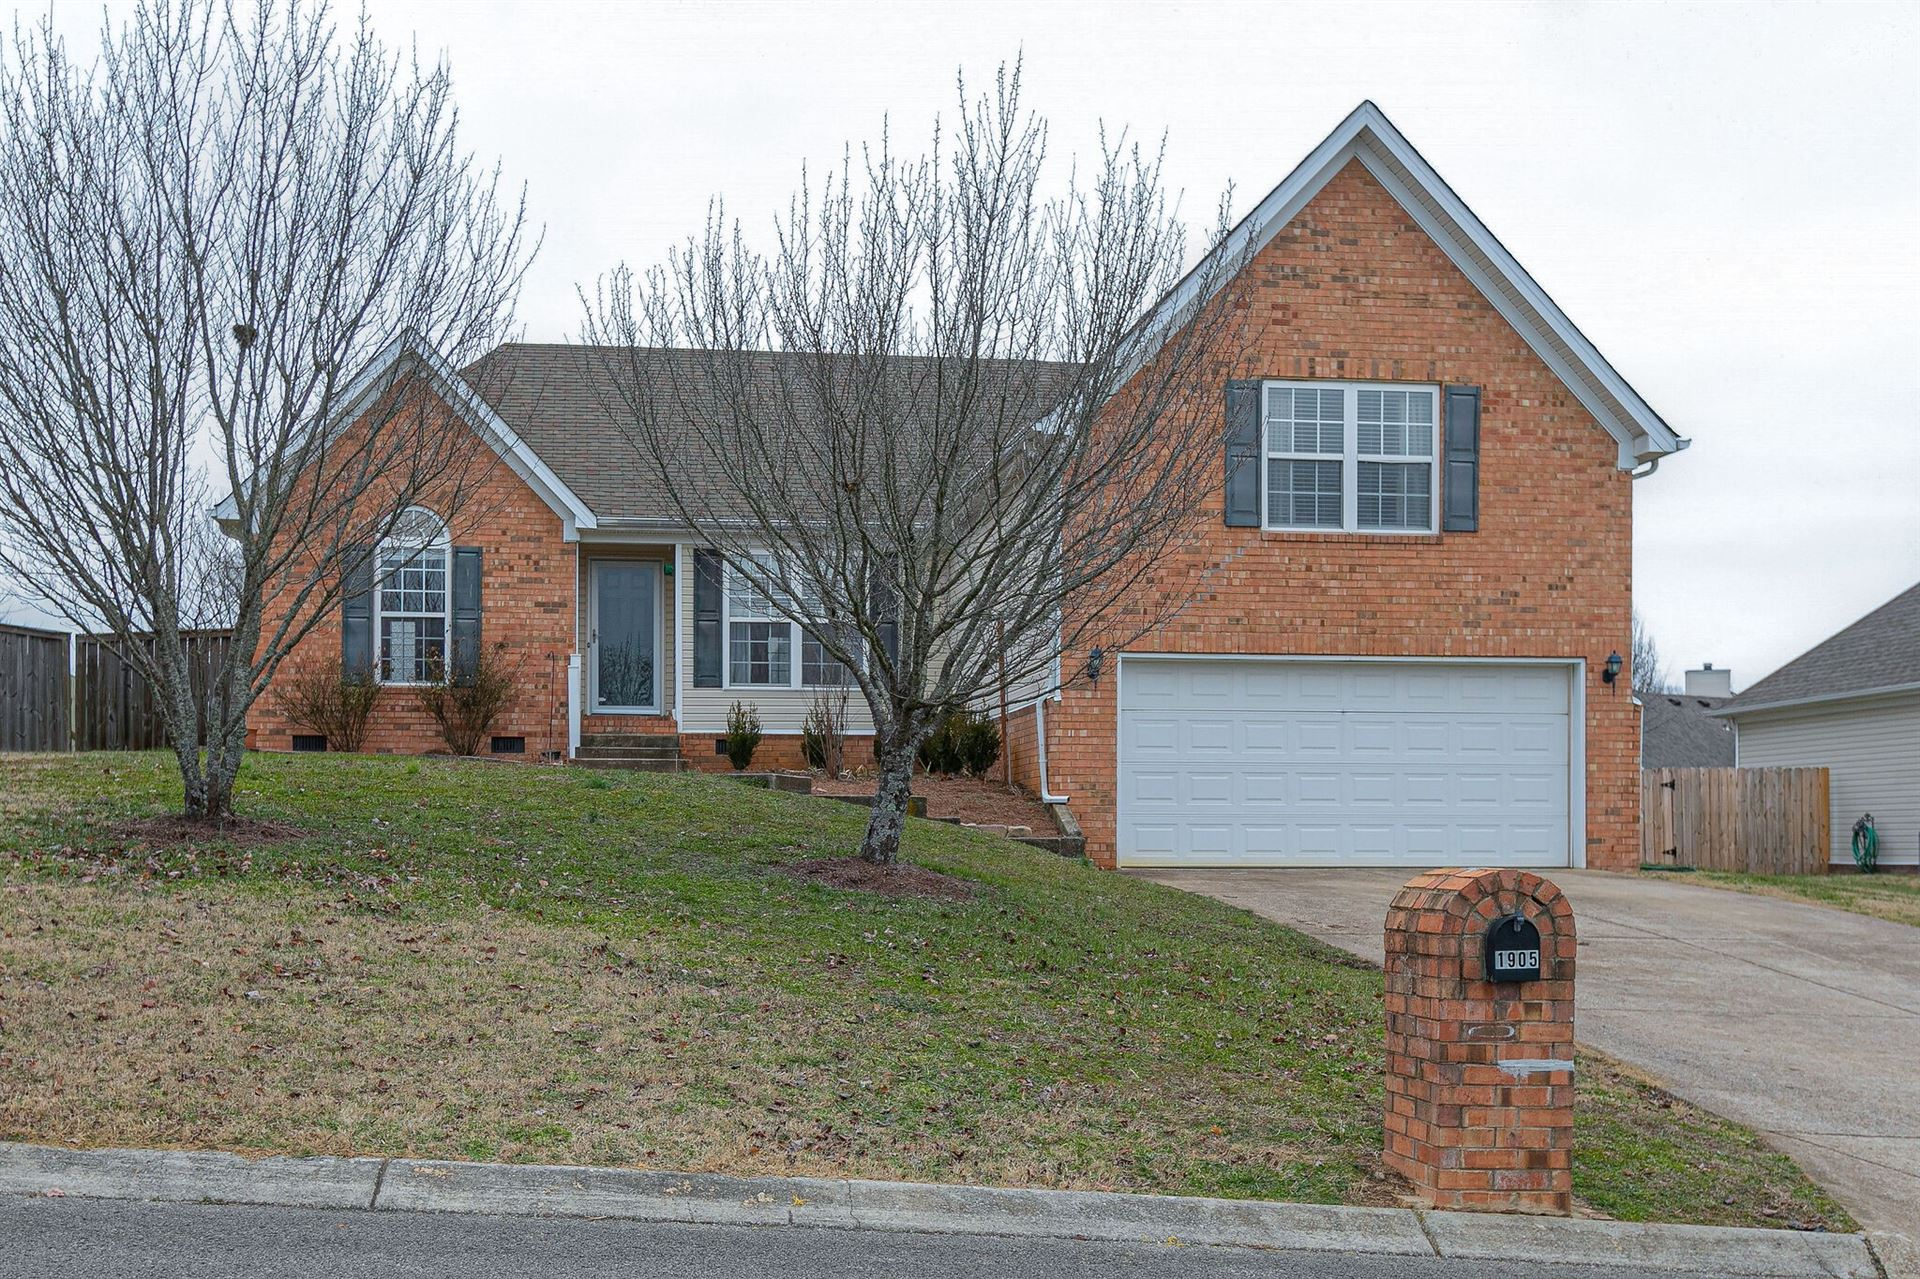 Photo of 1905 Portway Rd, Spring Hill, TN 37174 (MLS # 2219155)